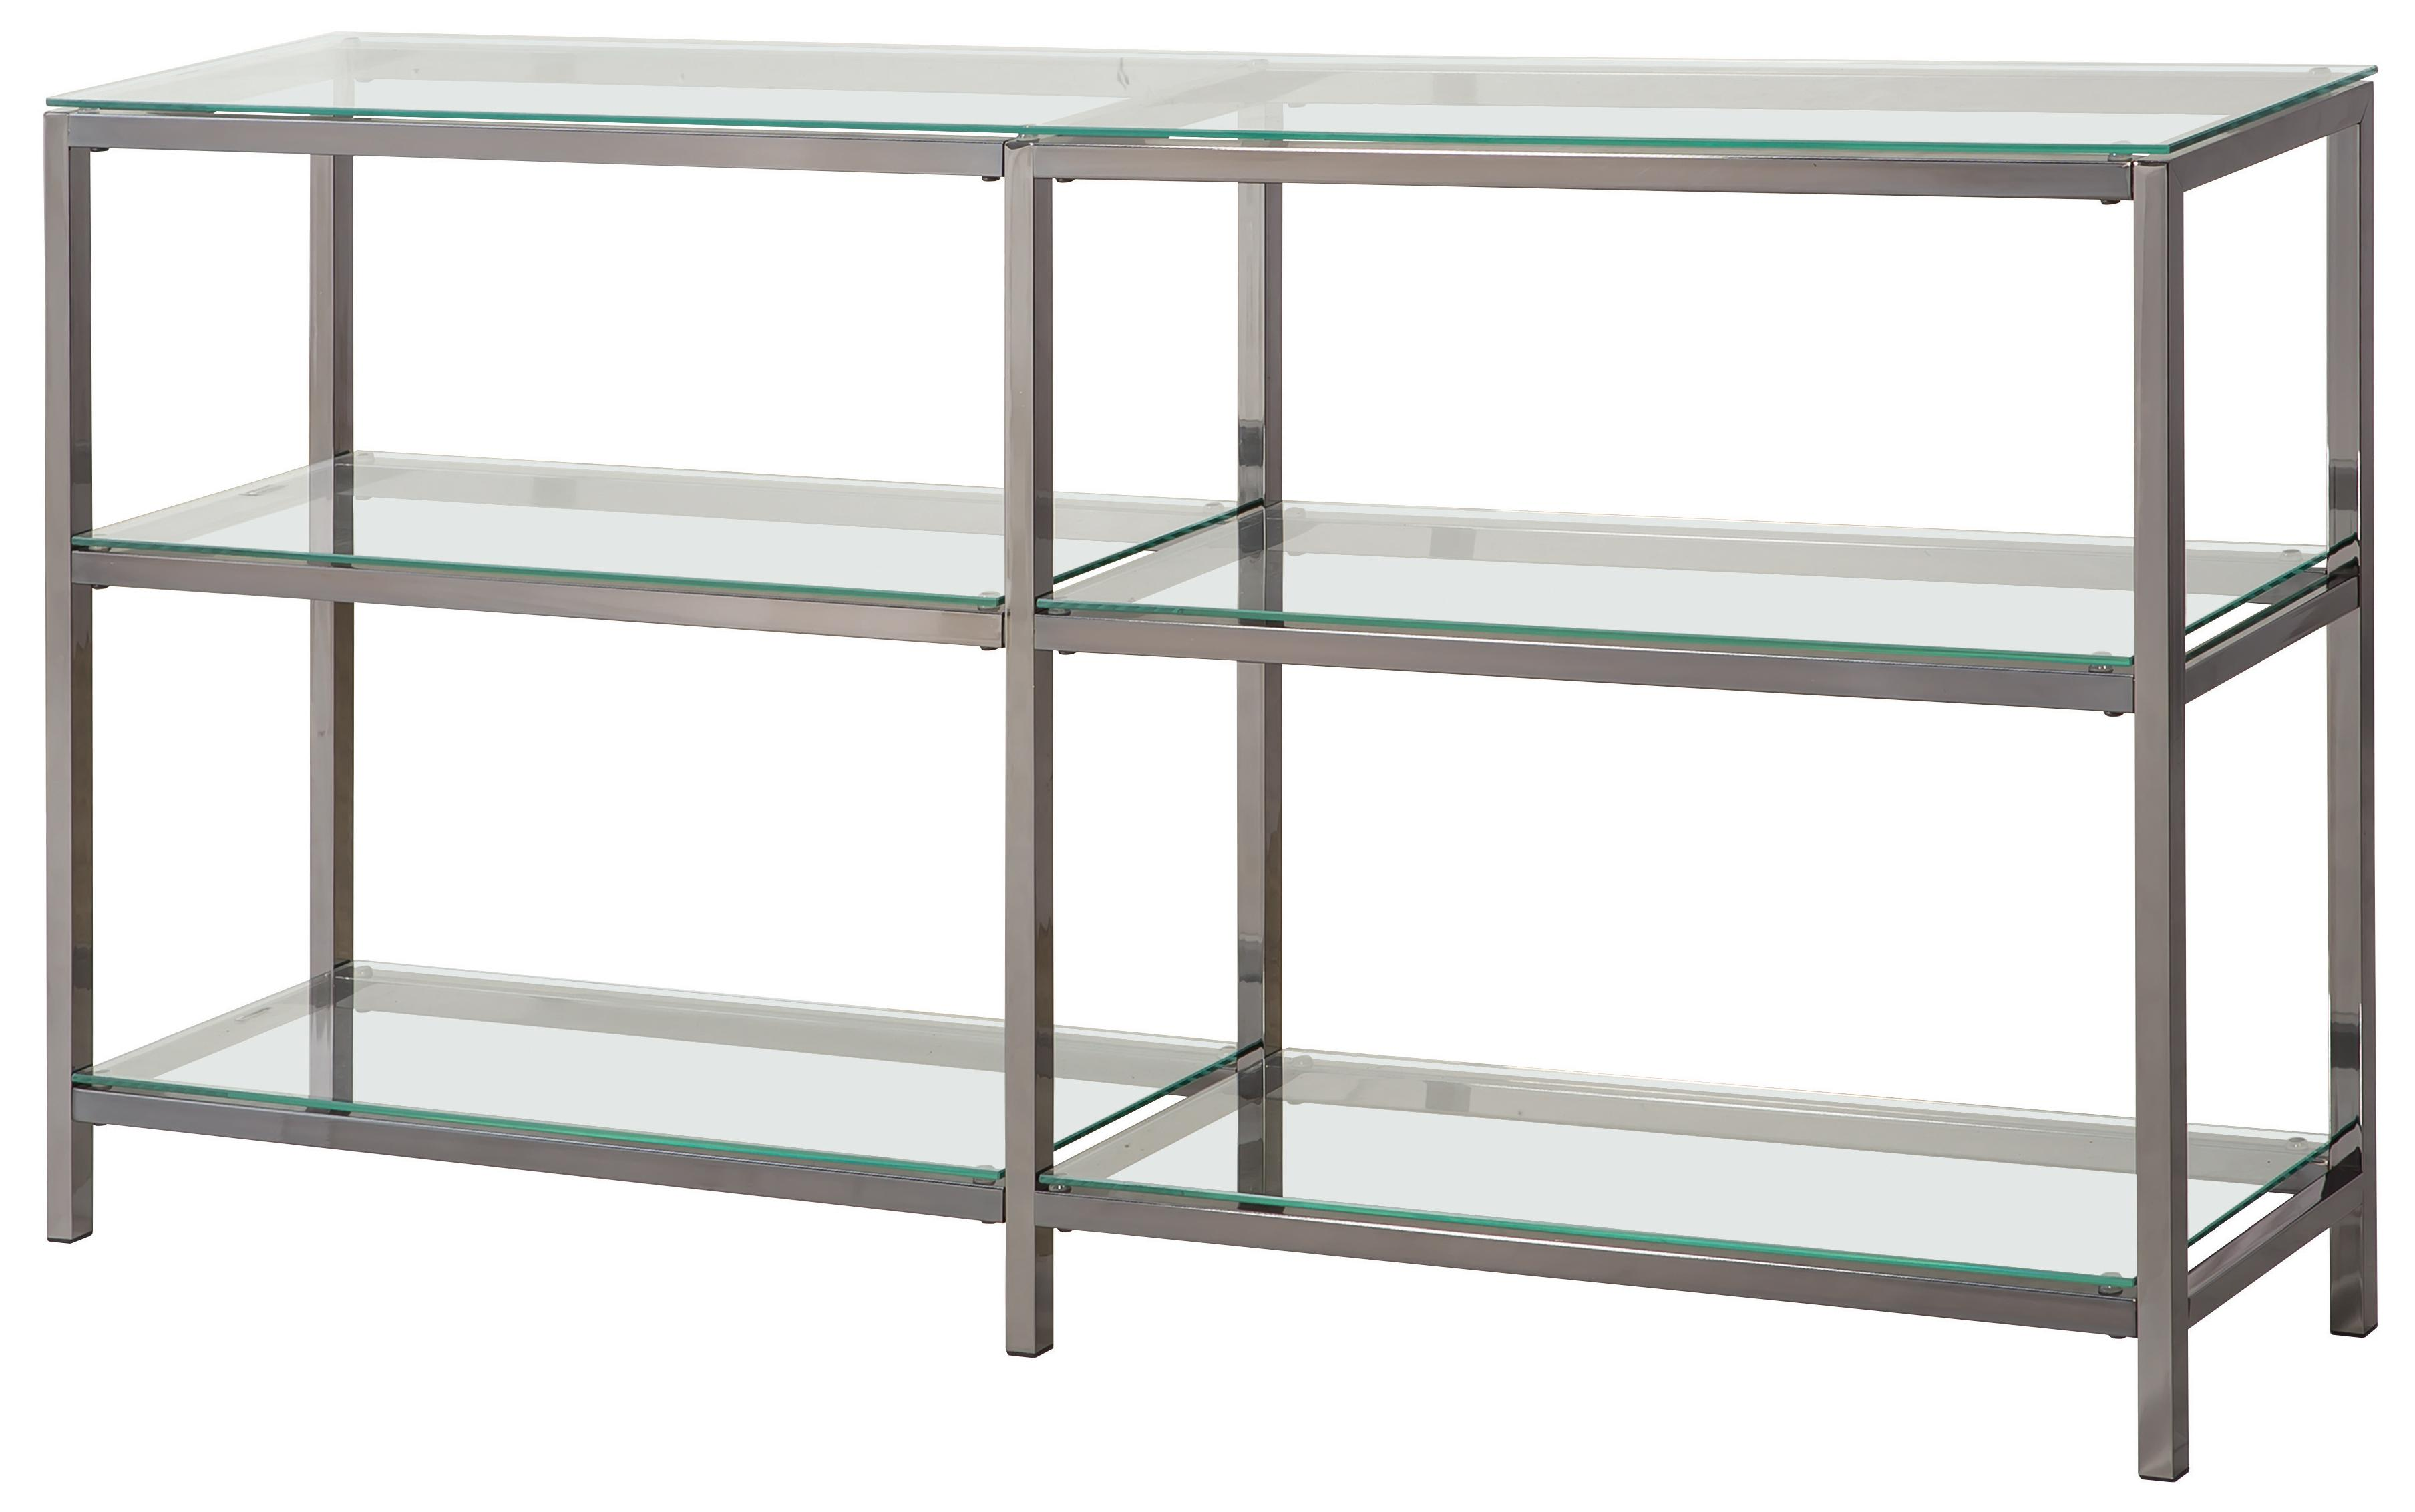 Metal Shelving Bookcases Industrial Metal Bookcase Console With Glass Shelves By Coaster At Value City Furniture